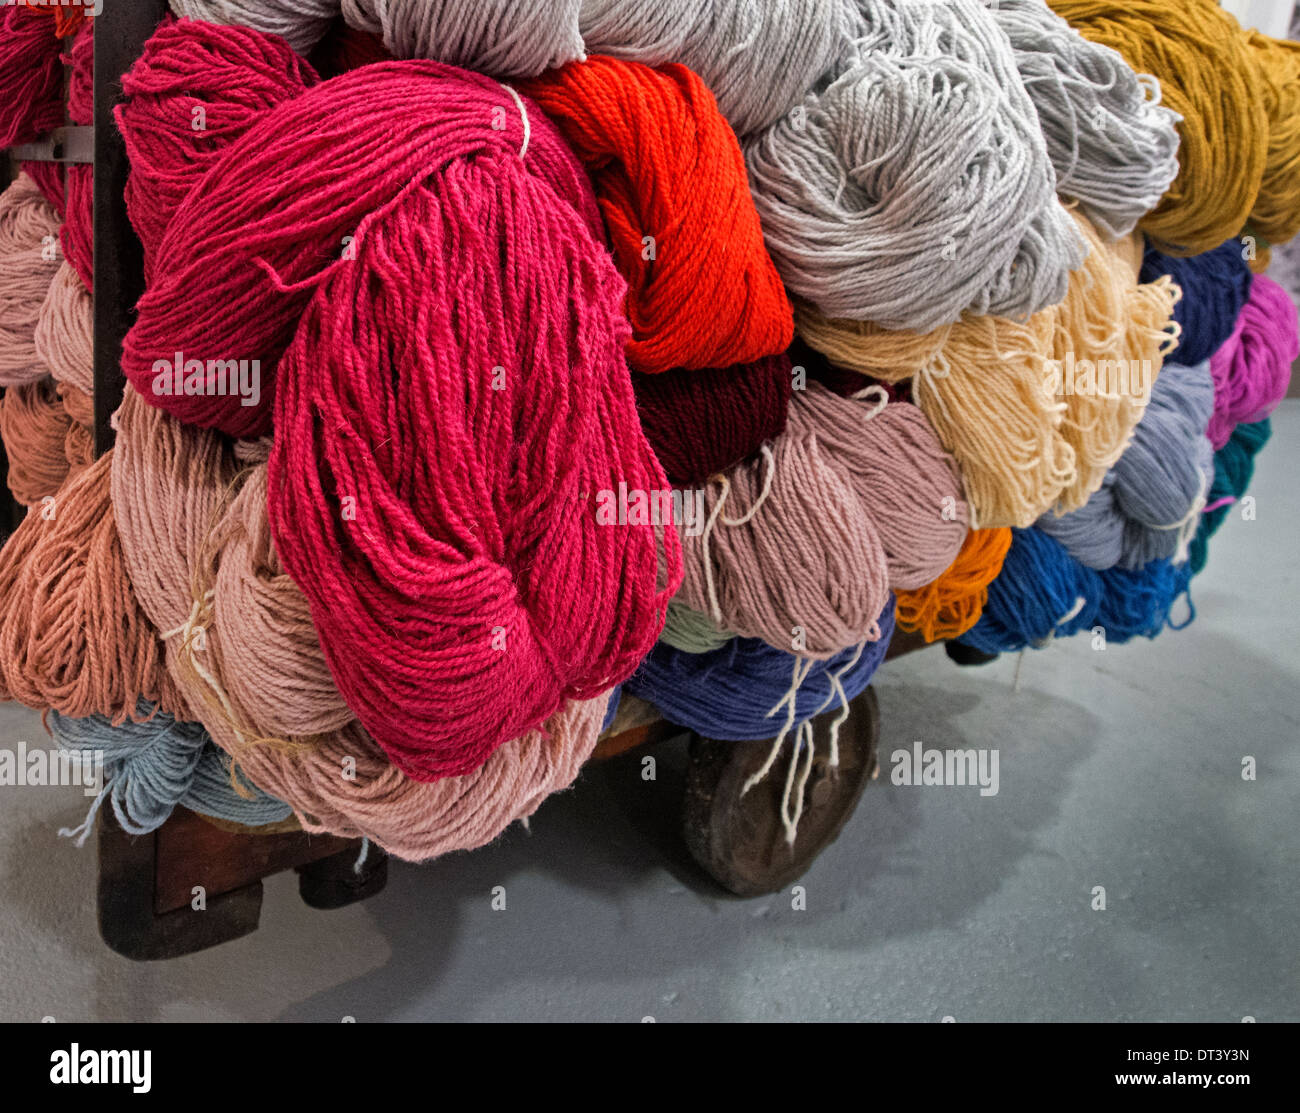 a trolley carries skeins of different coloured yarns for carpet-making, in the Kidderminster Museum of Carpet - Stock Image